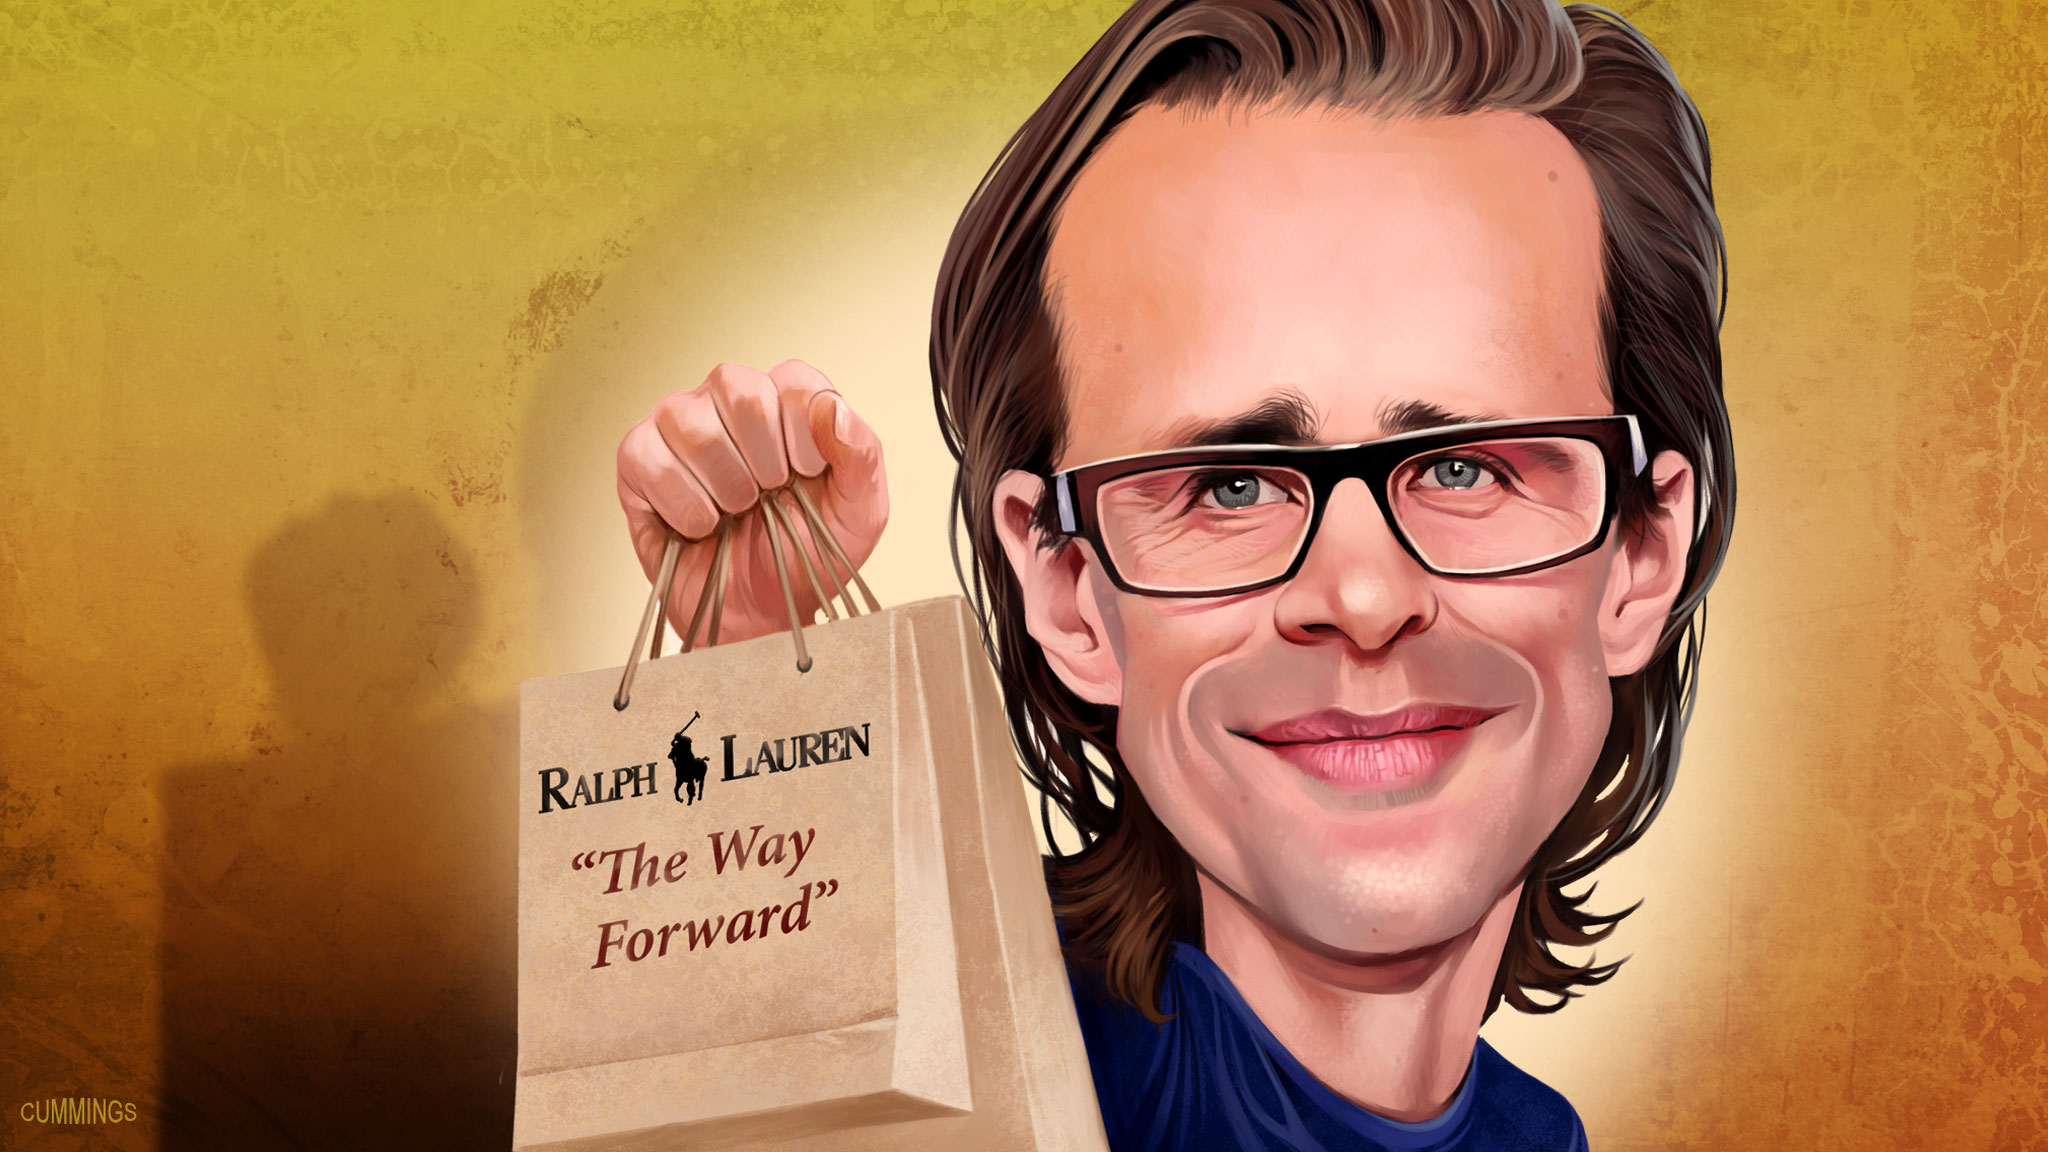 Stefan Larsson A Dose Of High Street Reality For A